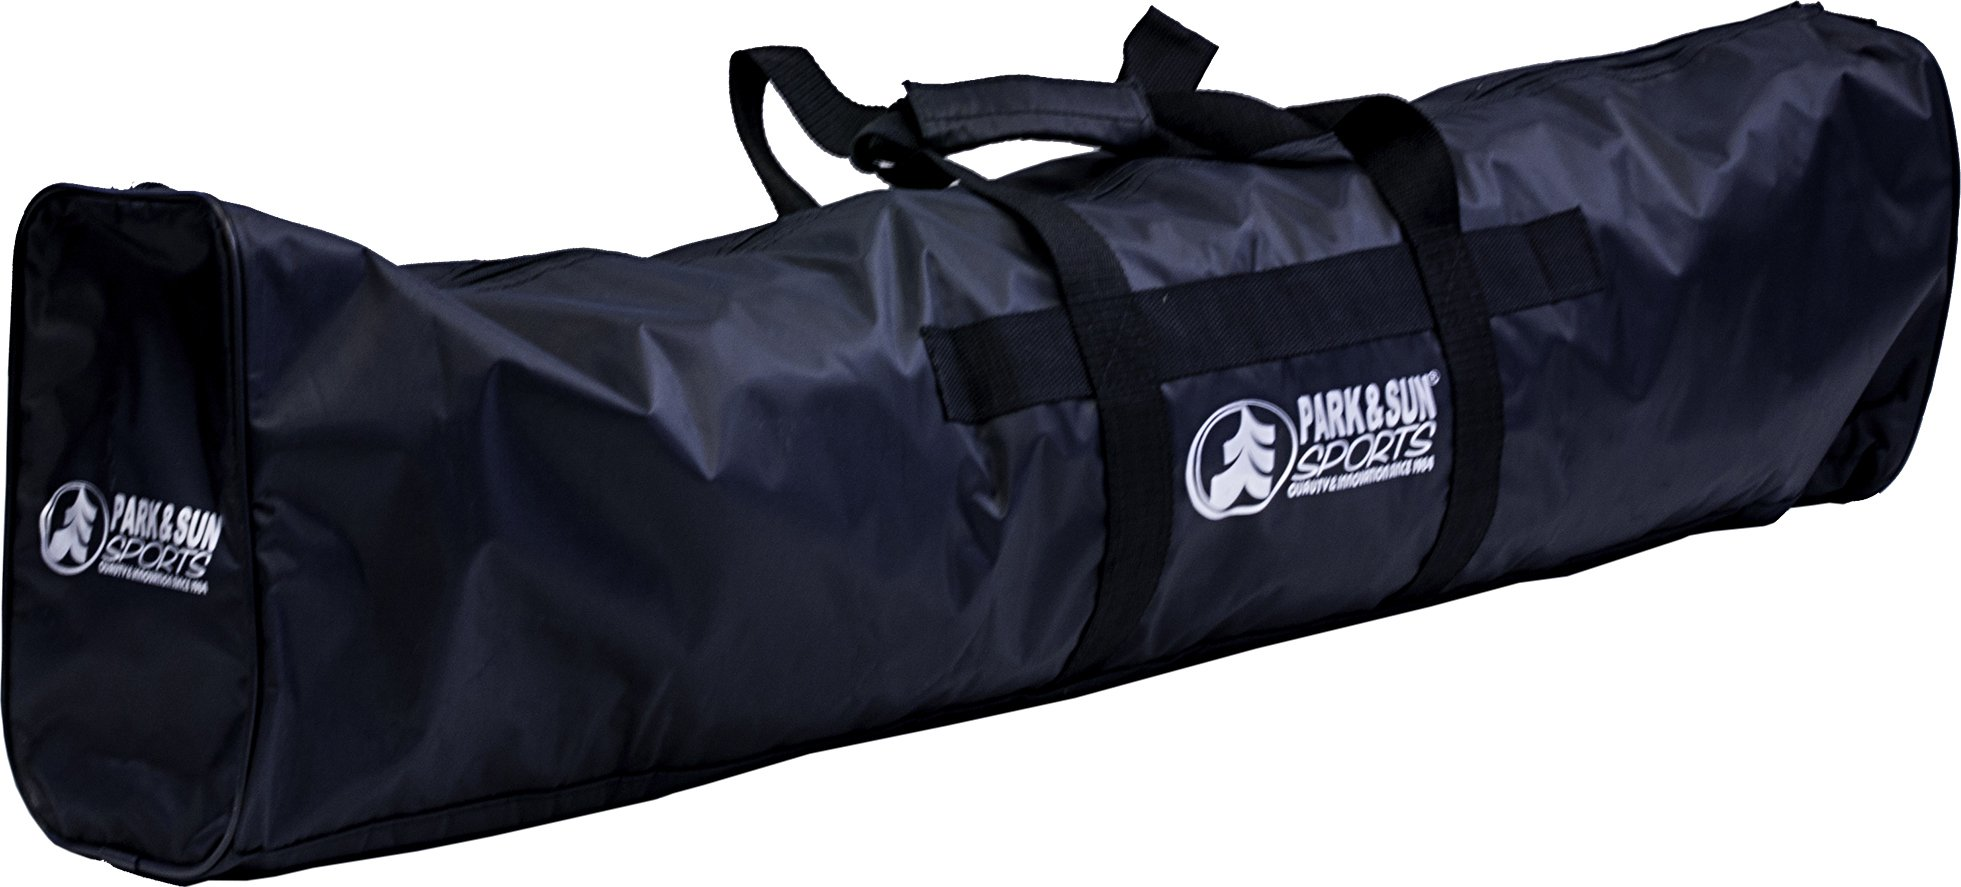 Park & Sun Sports Portable Indoor/Outdoor Badminton Net System with Carrying Bag and Accessories: Tournament Series by Park & Sun Sports (Image #5)